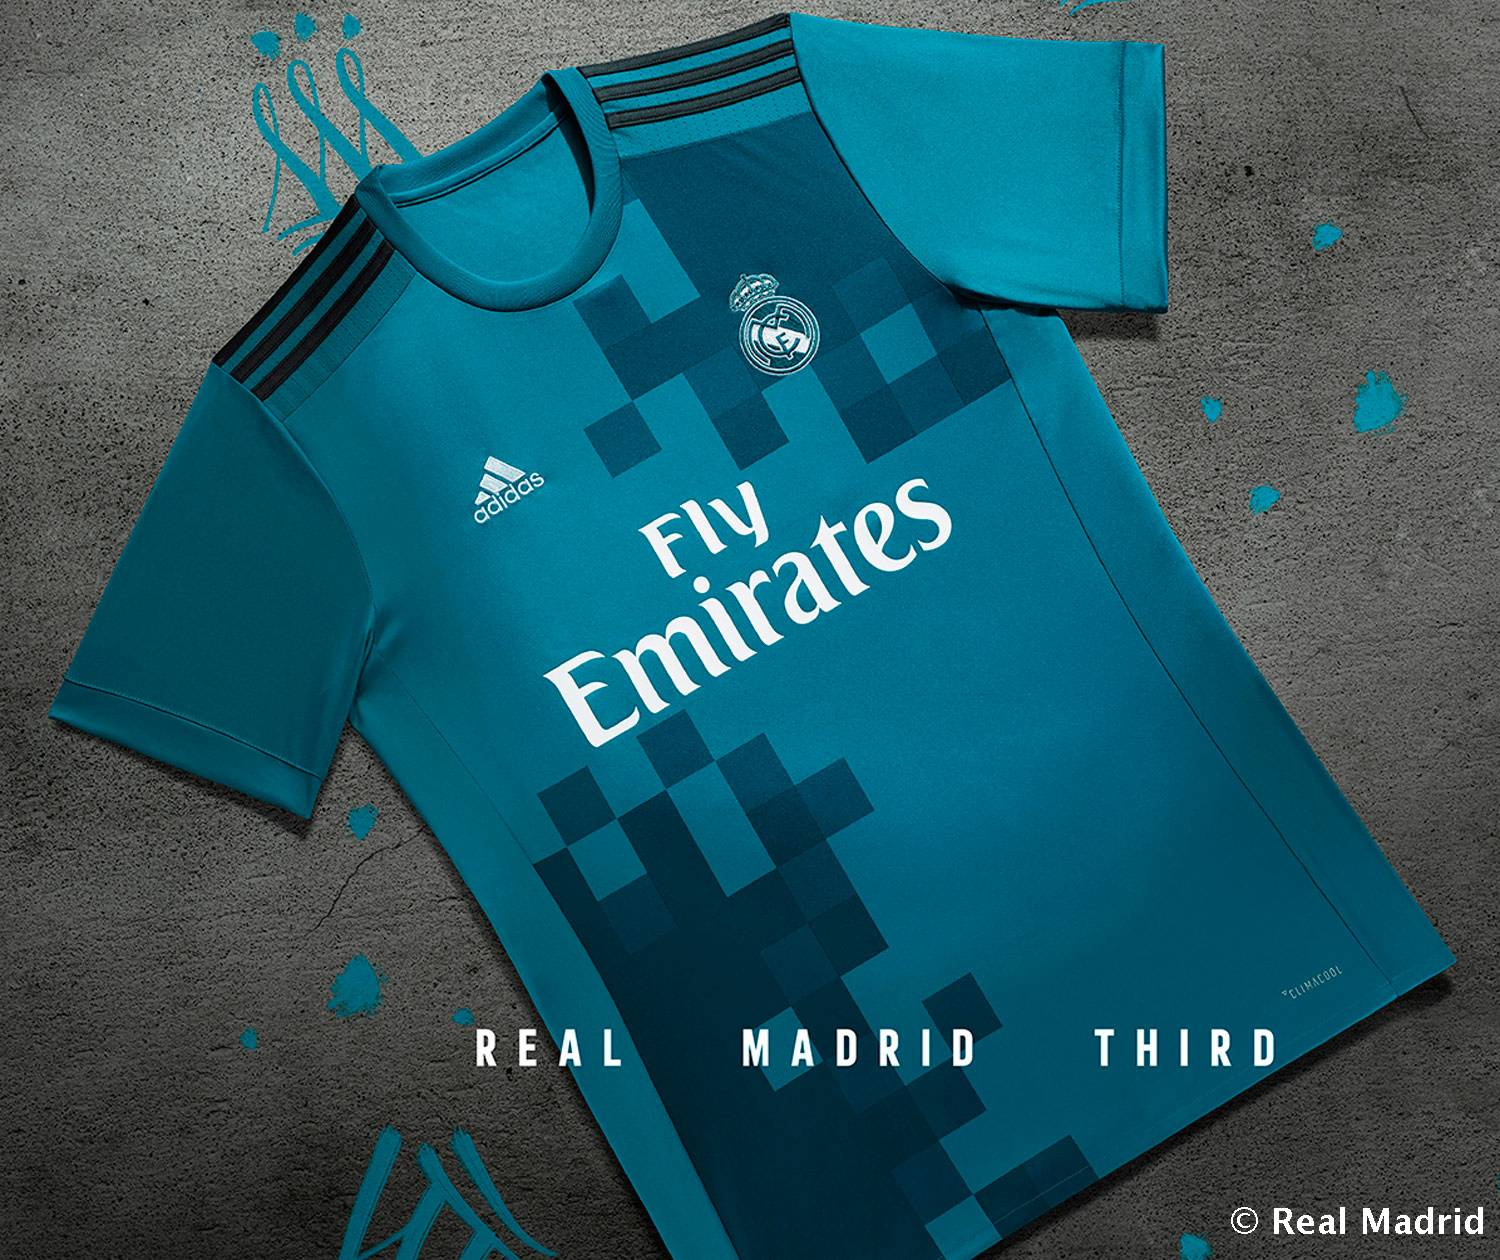 ... Click to enlarge image real madrid 17 18 adidas third kit j.jpg 17d921994de00